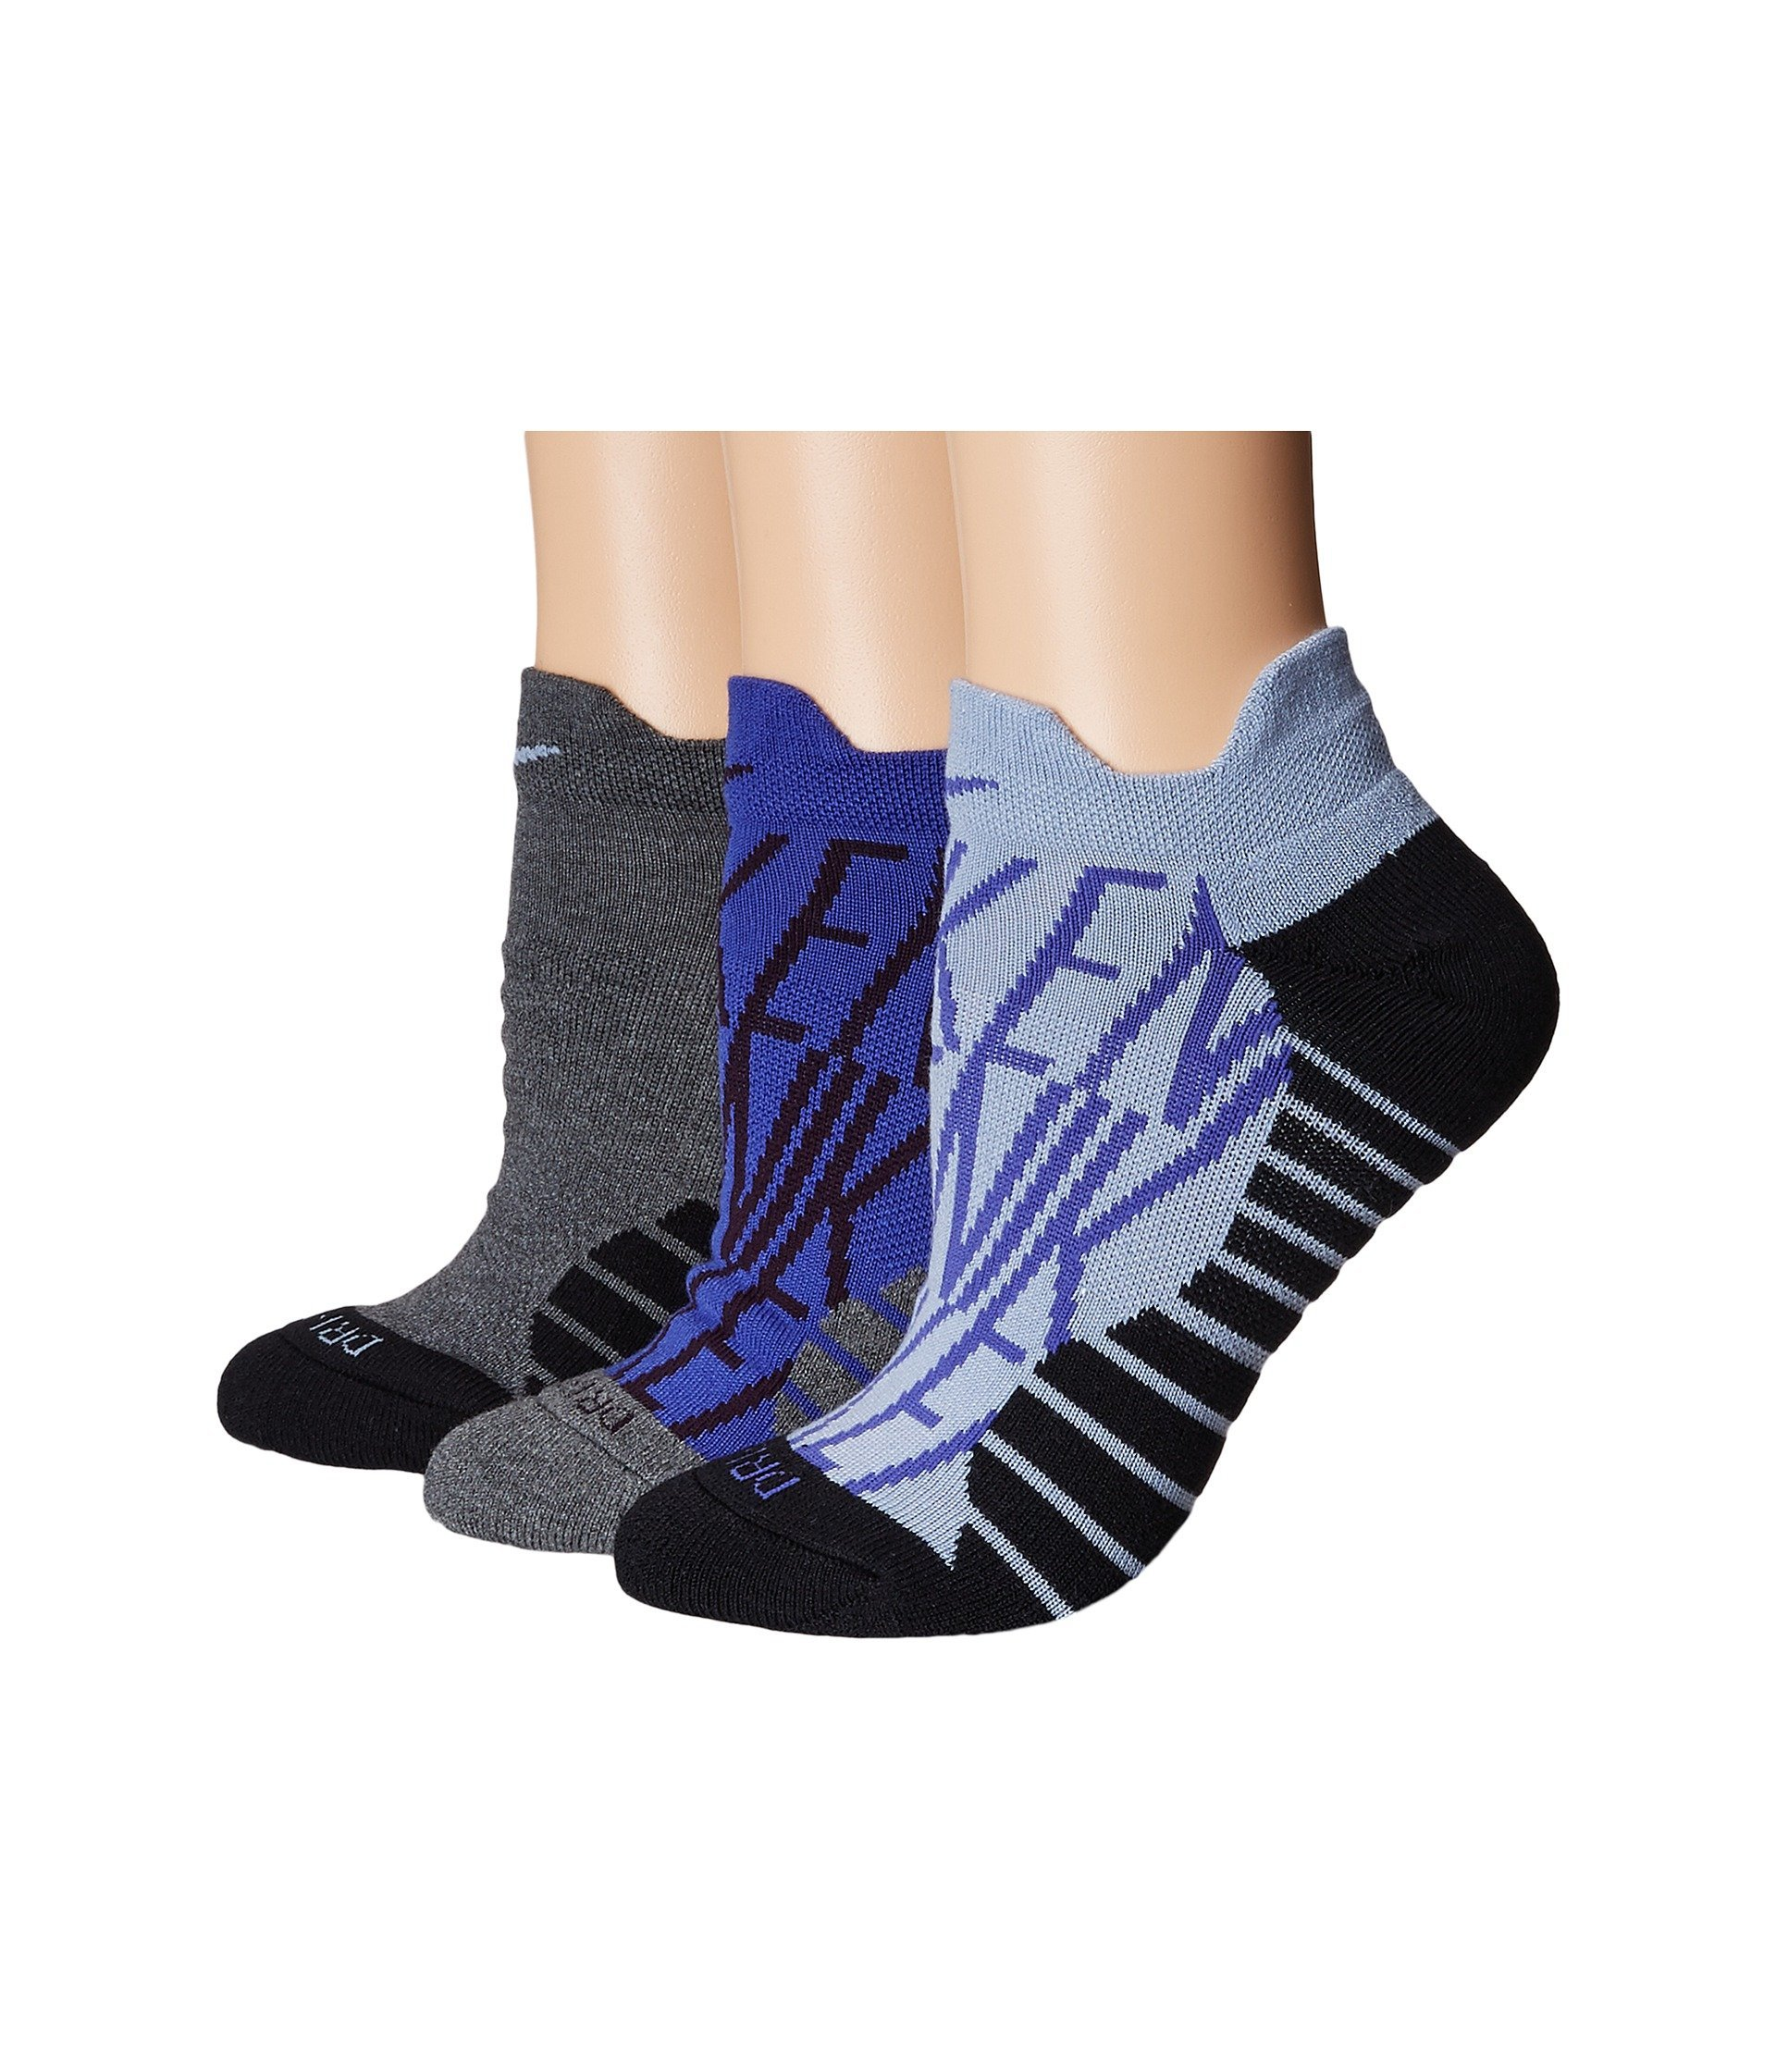 Nike Women`s Dry Cushion Graphic Low Training Socks (3 Pair) (Multicolor 8, Medium)